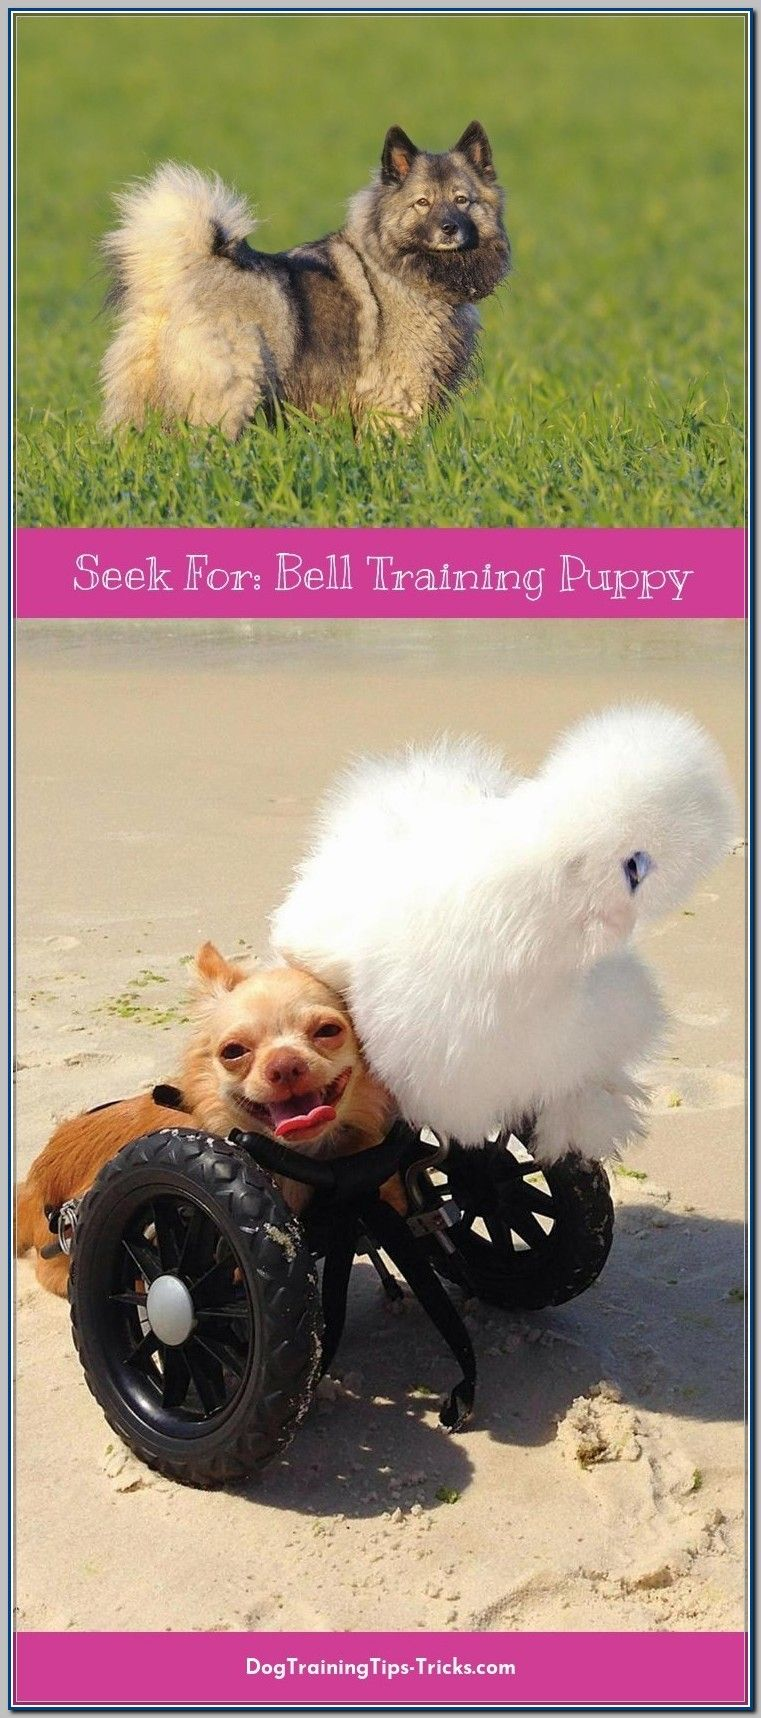 Ways To Use Bell Training For Puppies Puppies Dog Training Animals